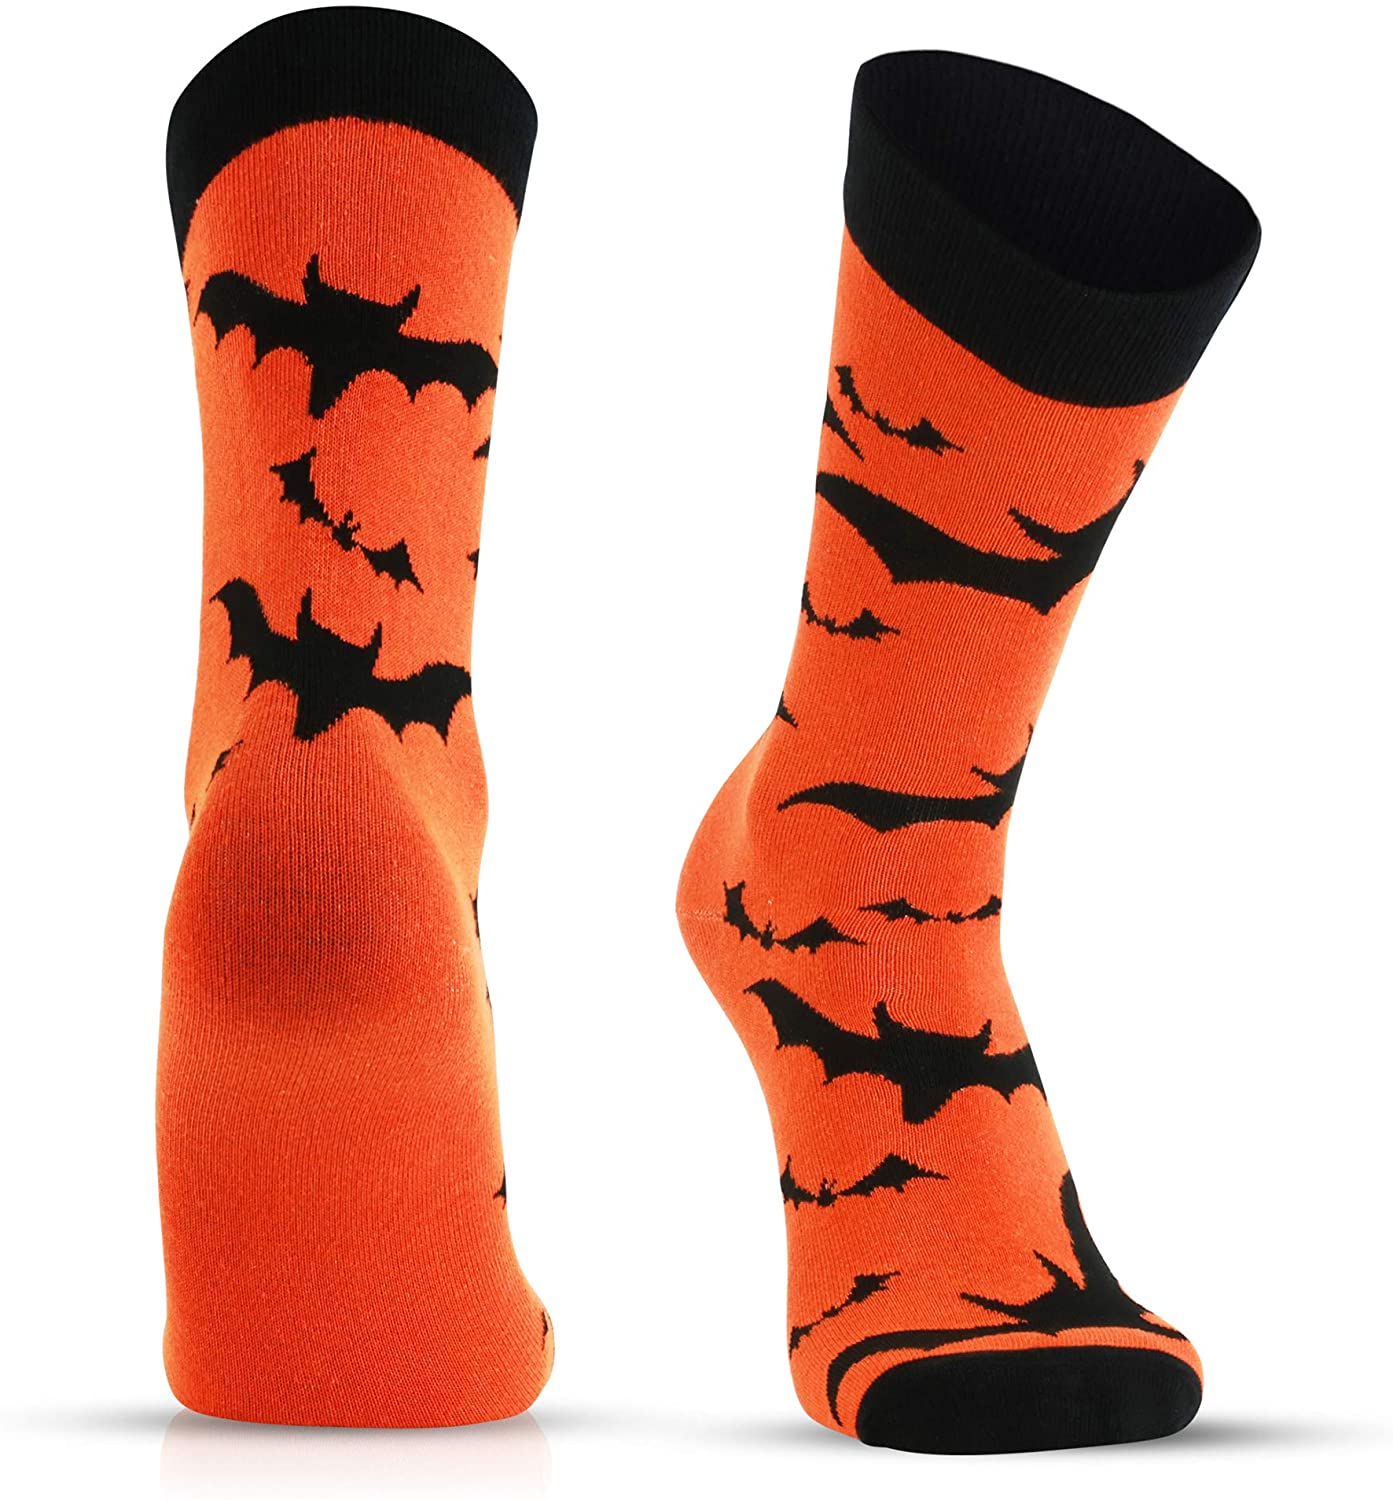 Fun Holiday Socks for Men - Cool Novelty Design Gifts for Dad, Son, Husband - Halloween 4th Of July